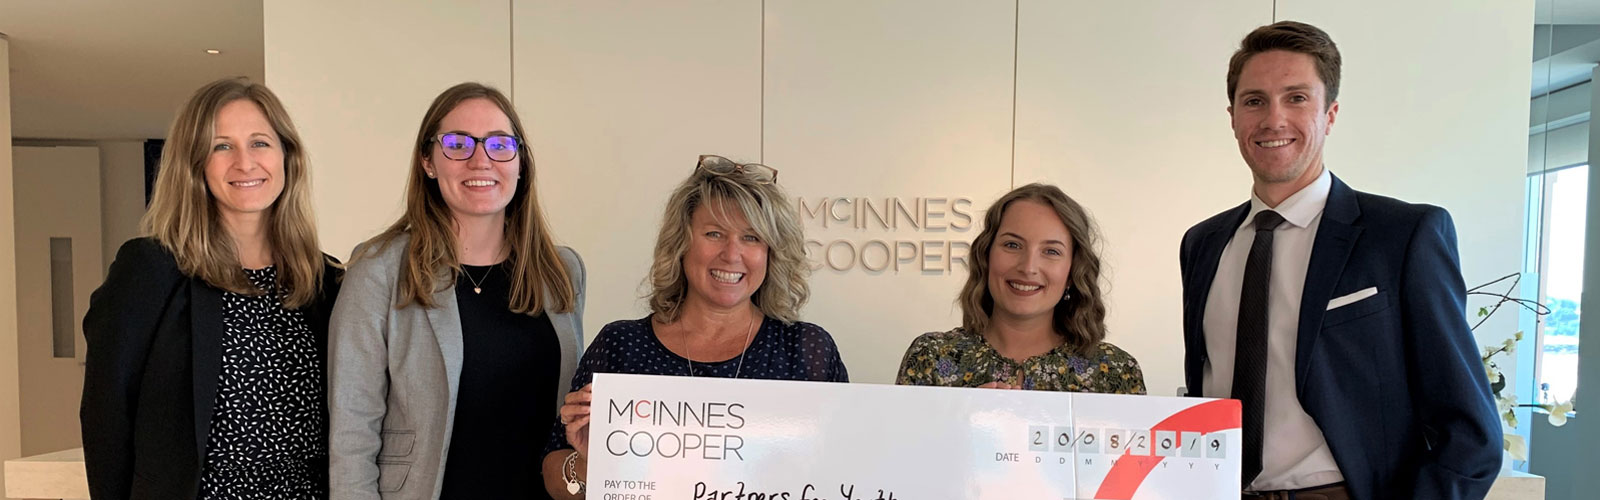 Meet our newest sponsor: McInnes Cooper